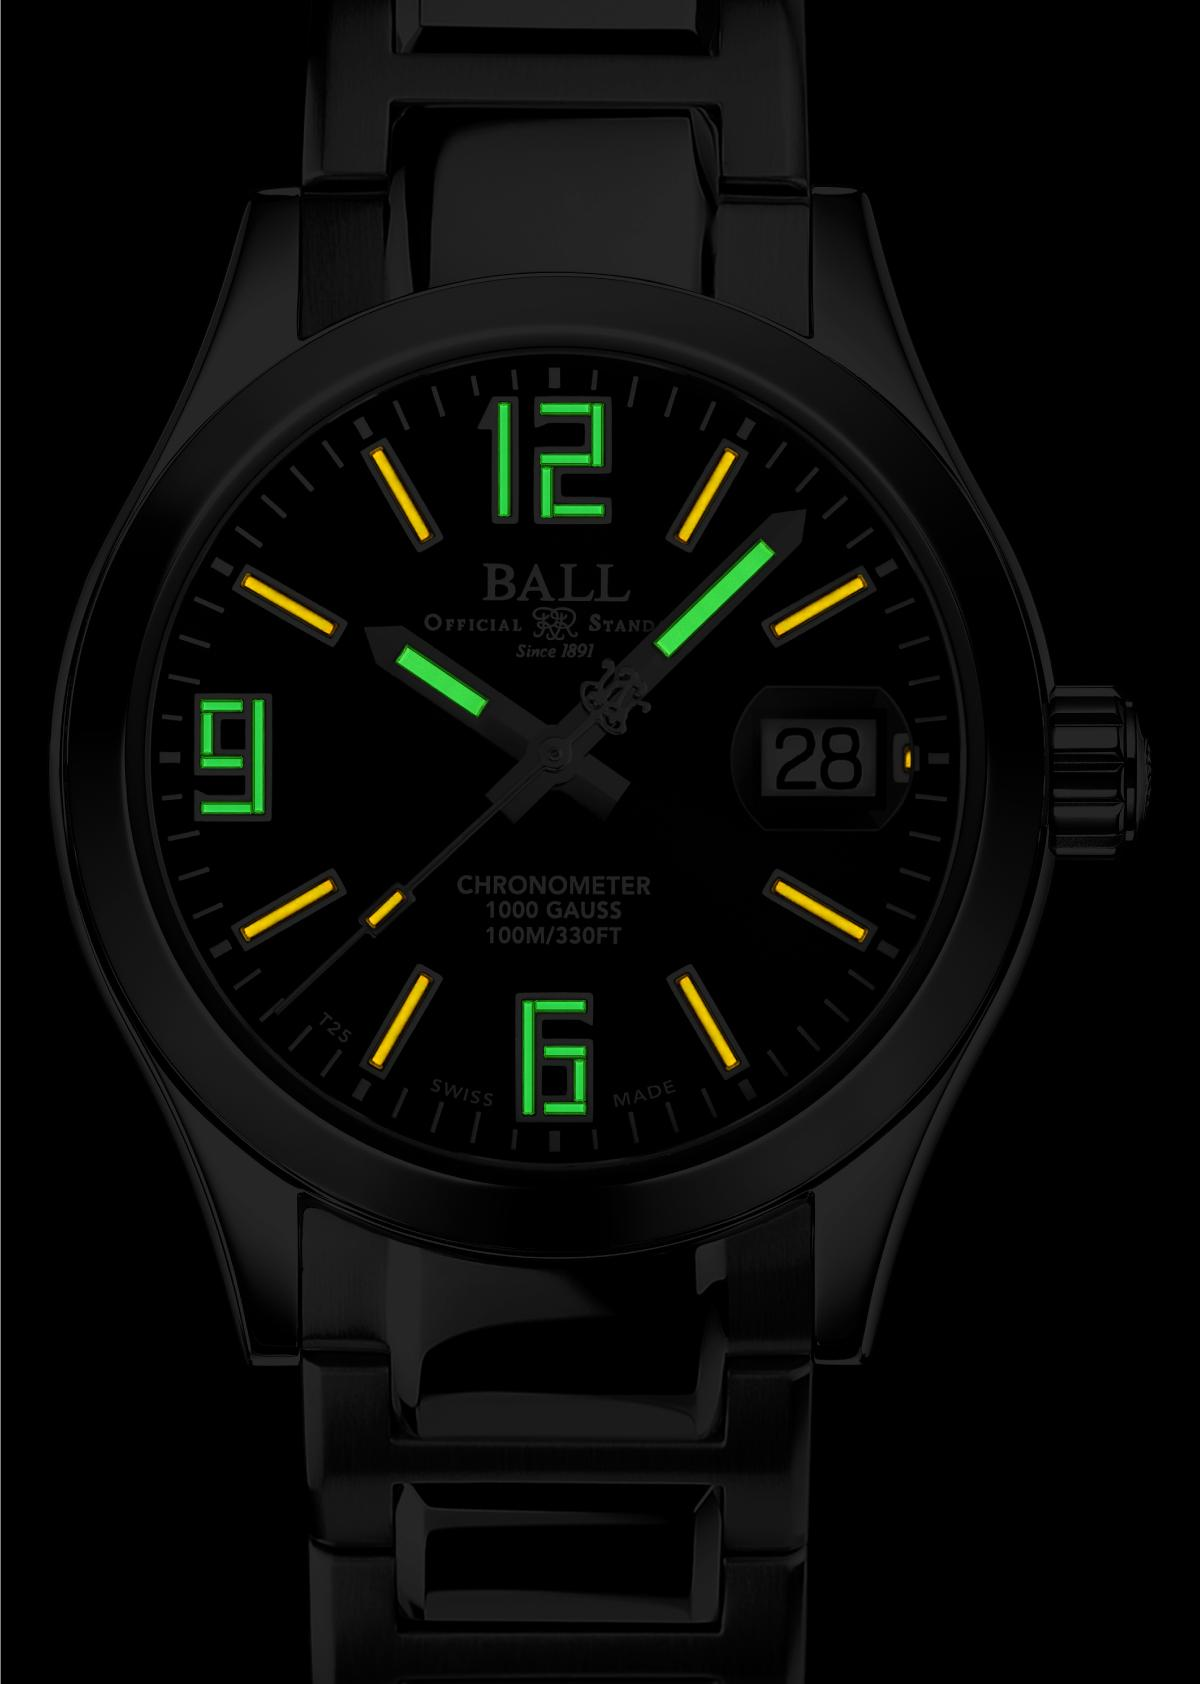 Green dial and Black watch